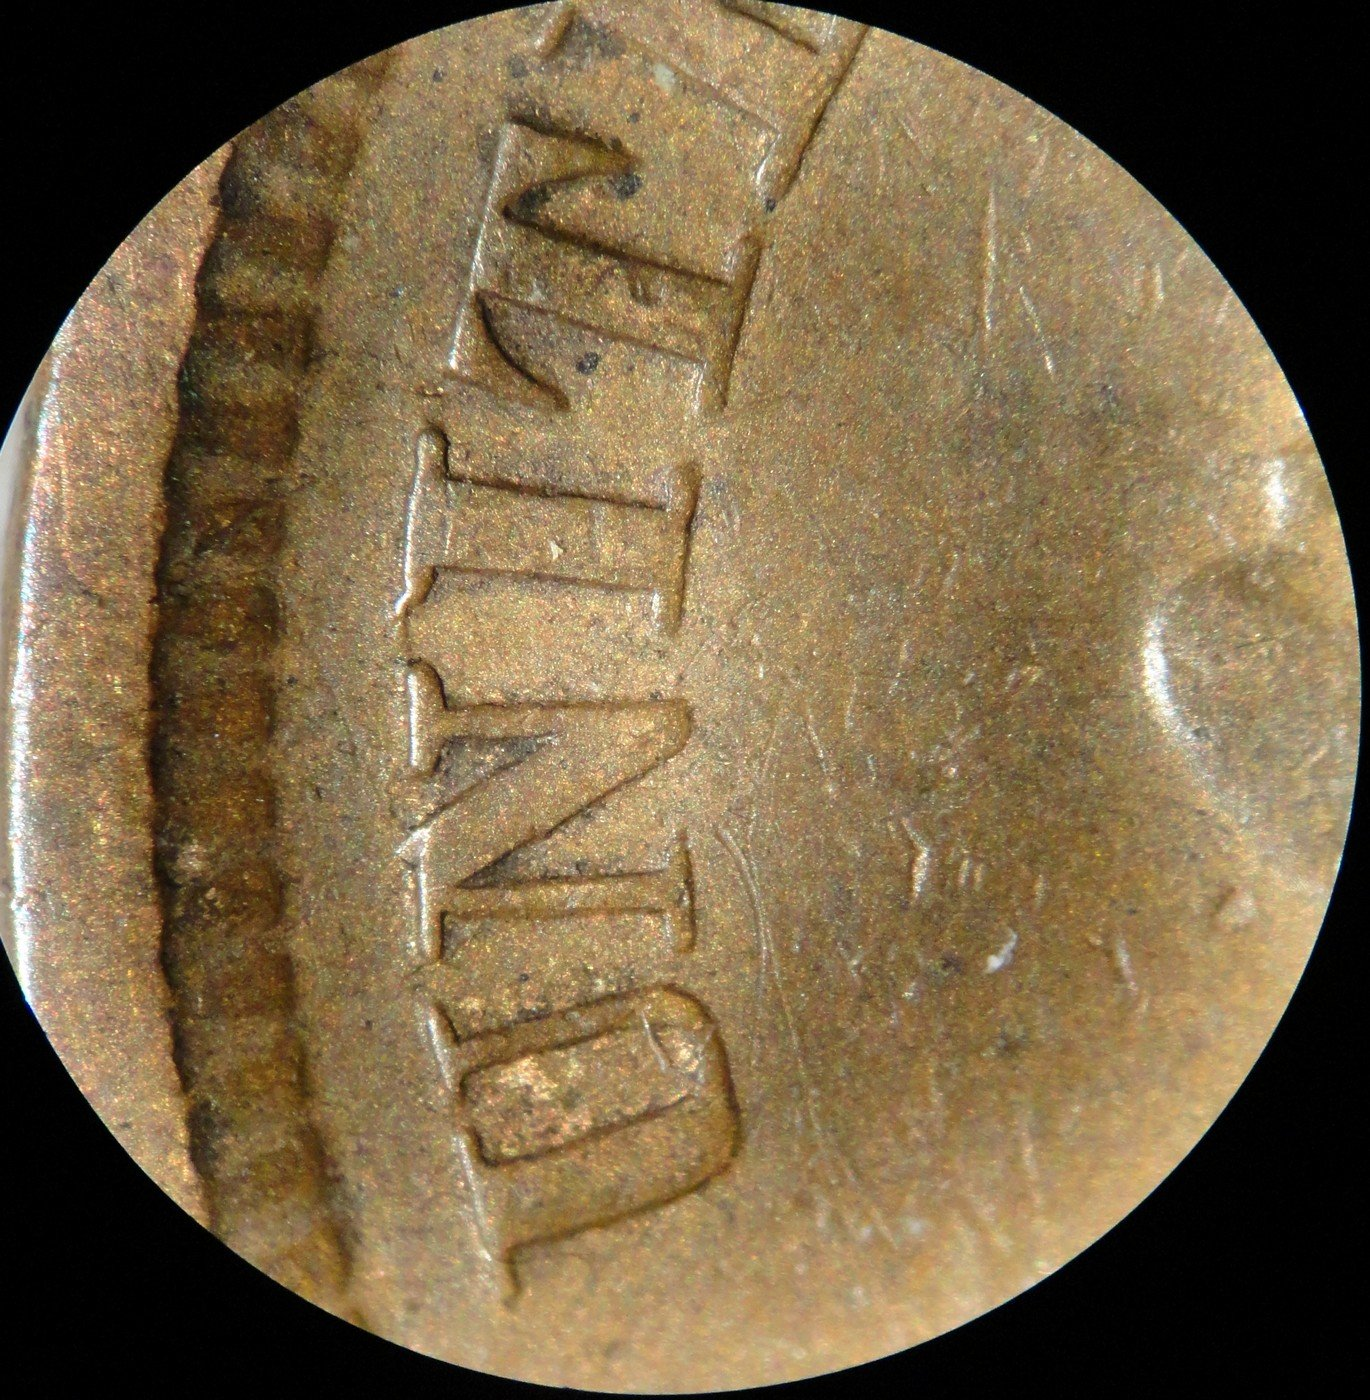 1864 No-L CRK-004 - Indian Head Penny